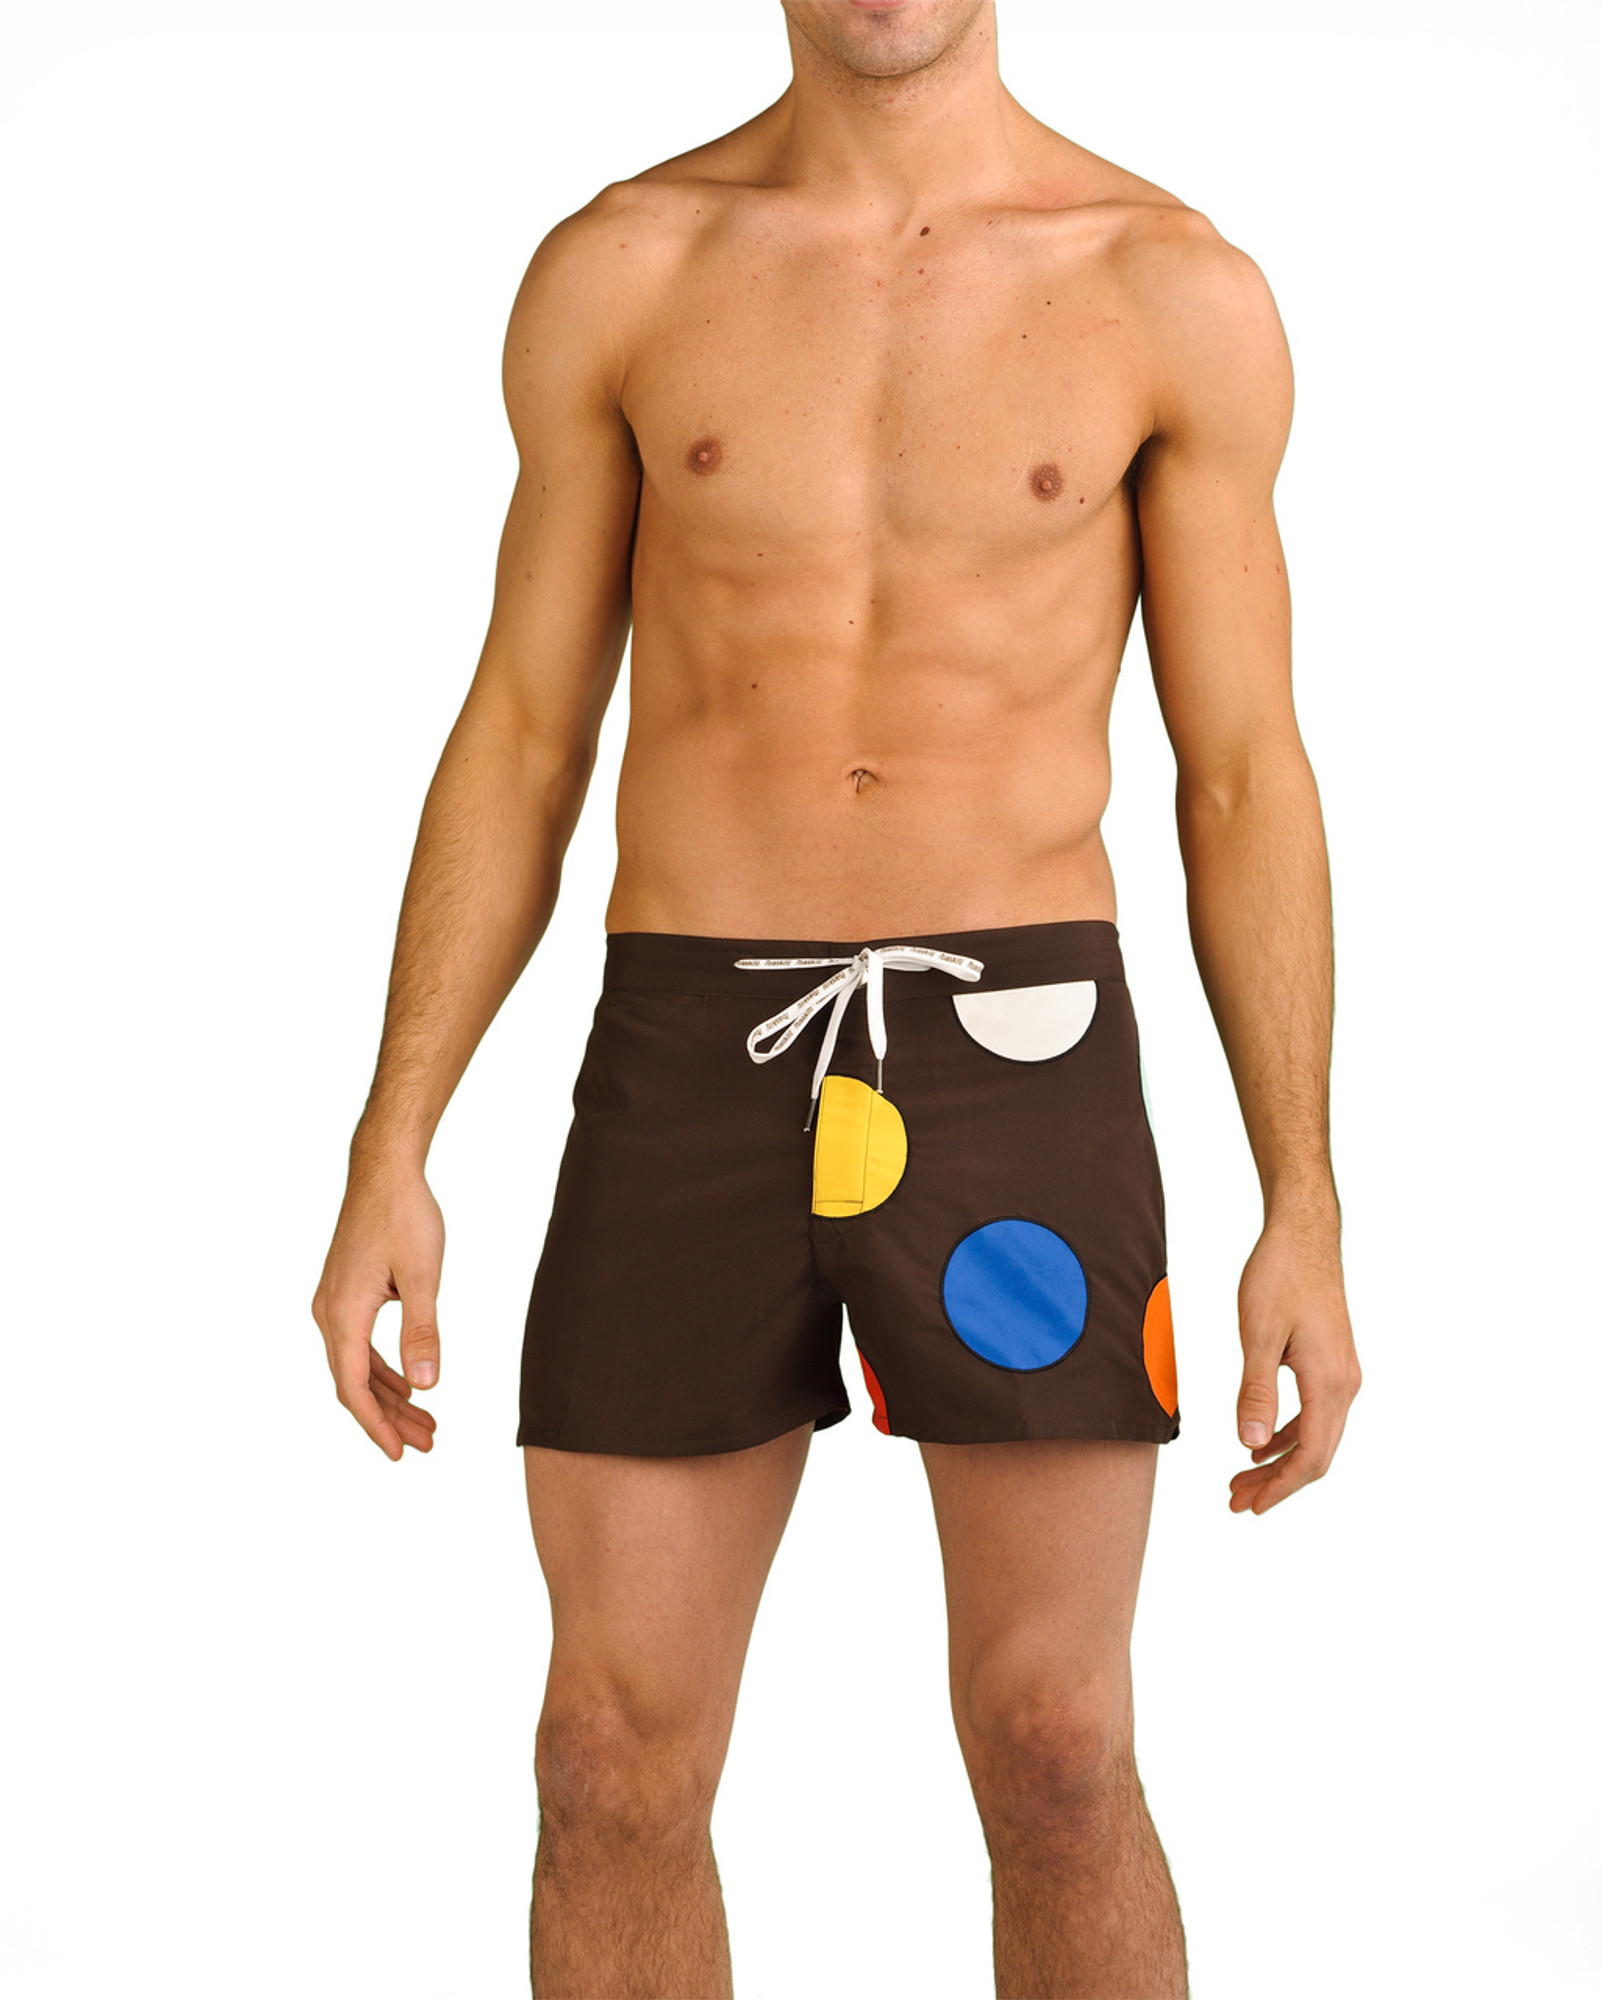 d1821d5f2c4a Our Dots swimwear is comfortable, fun, and stylish. Get noticed at the  beach ...